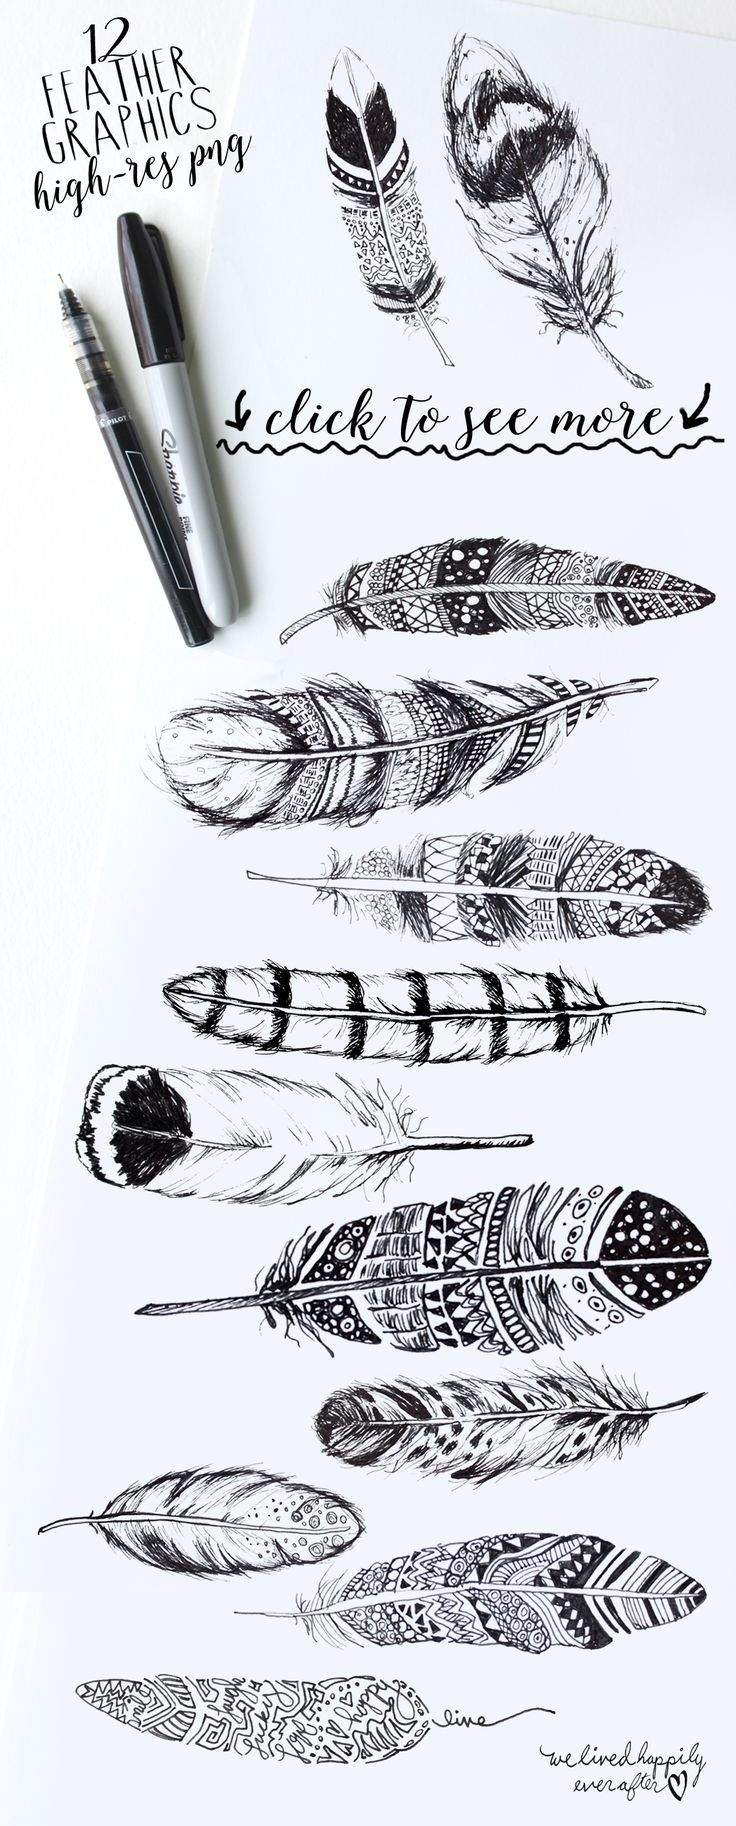 These Boho Rustic Feathers are part of our December Big Bundle! See what we've got in store!